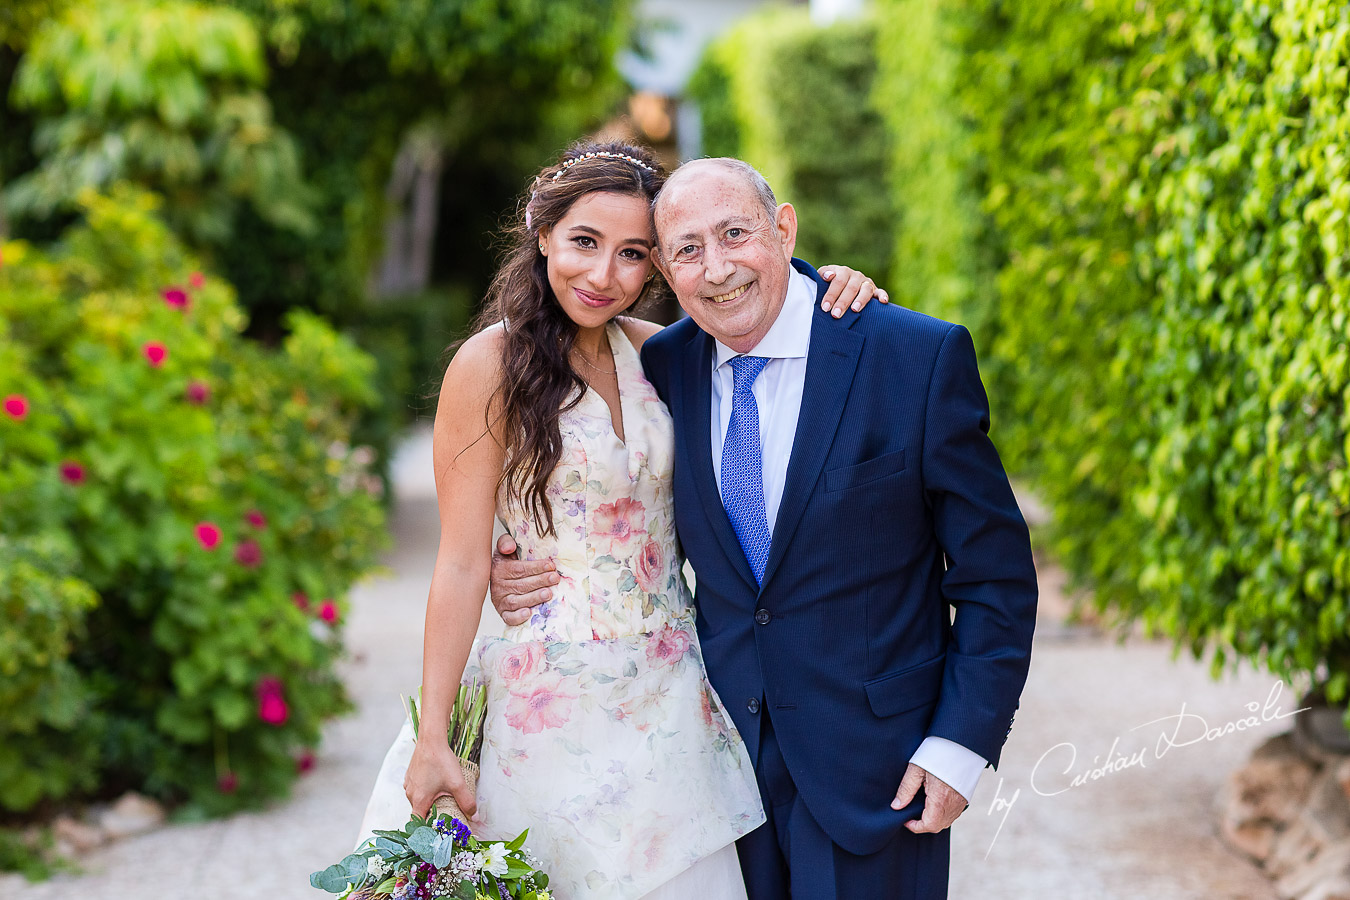 Portrait with the bride and her father photographed as part of an Exclusive Wedding photography at Grand Resort Limassol, captured by Cyprus Wedding Photographer Cristian Dascalu.